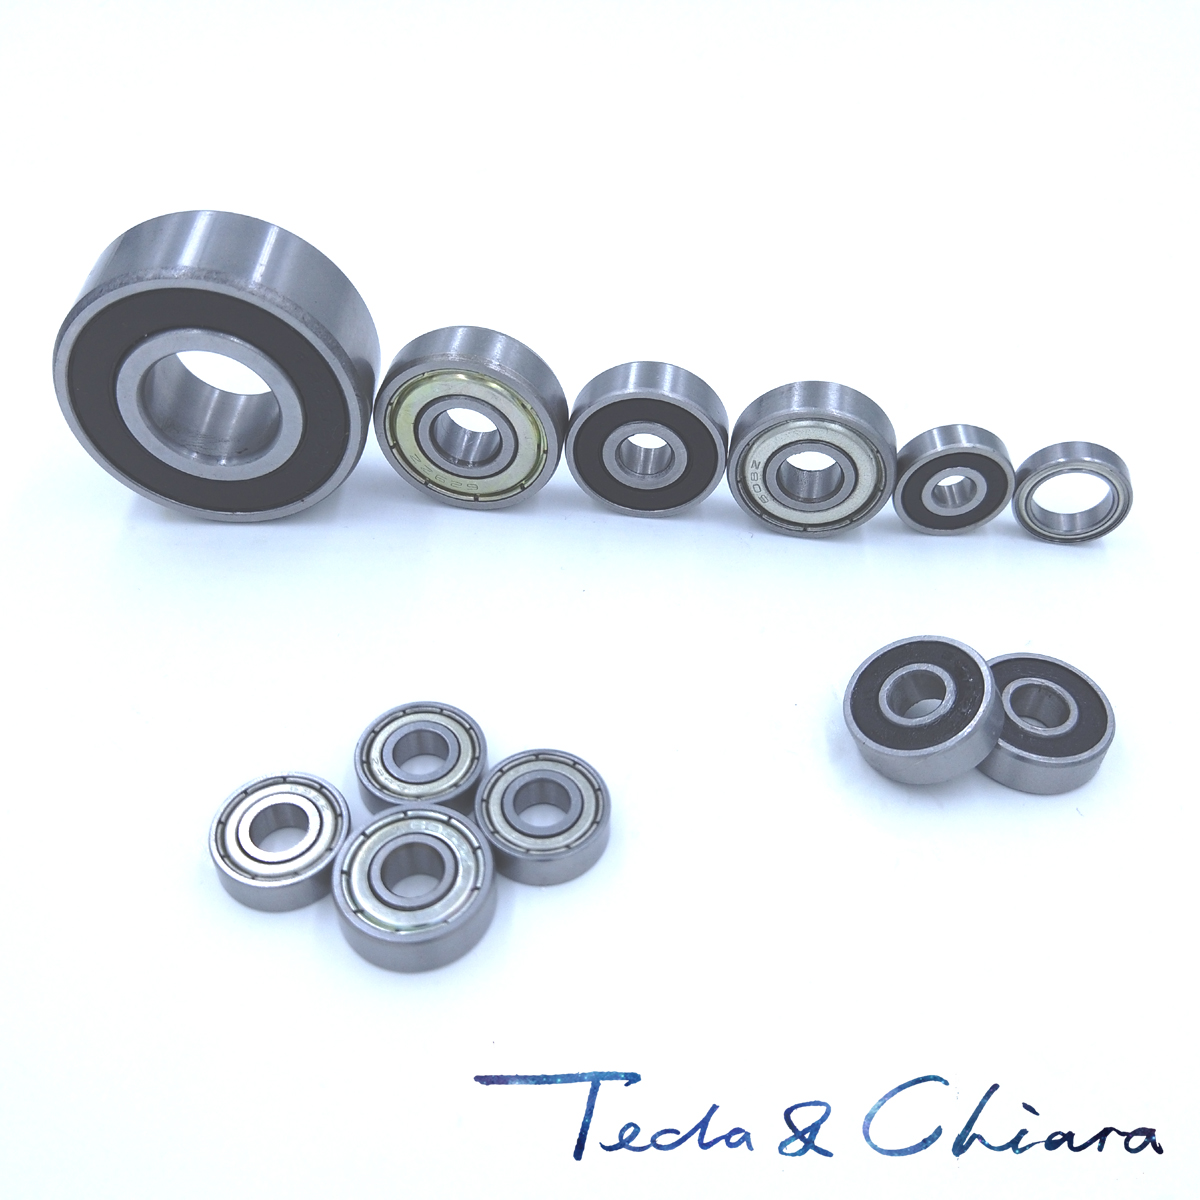 6200 6200ZZ <font><b>6200RS</b></font> 6200-2Z 6200Z 6200-2RS ZZ RS RZ 2RZ Deep Groove Ball Bearings 10 x 30 x 9mm High Quality image